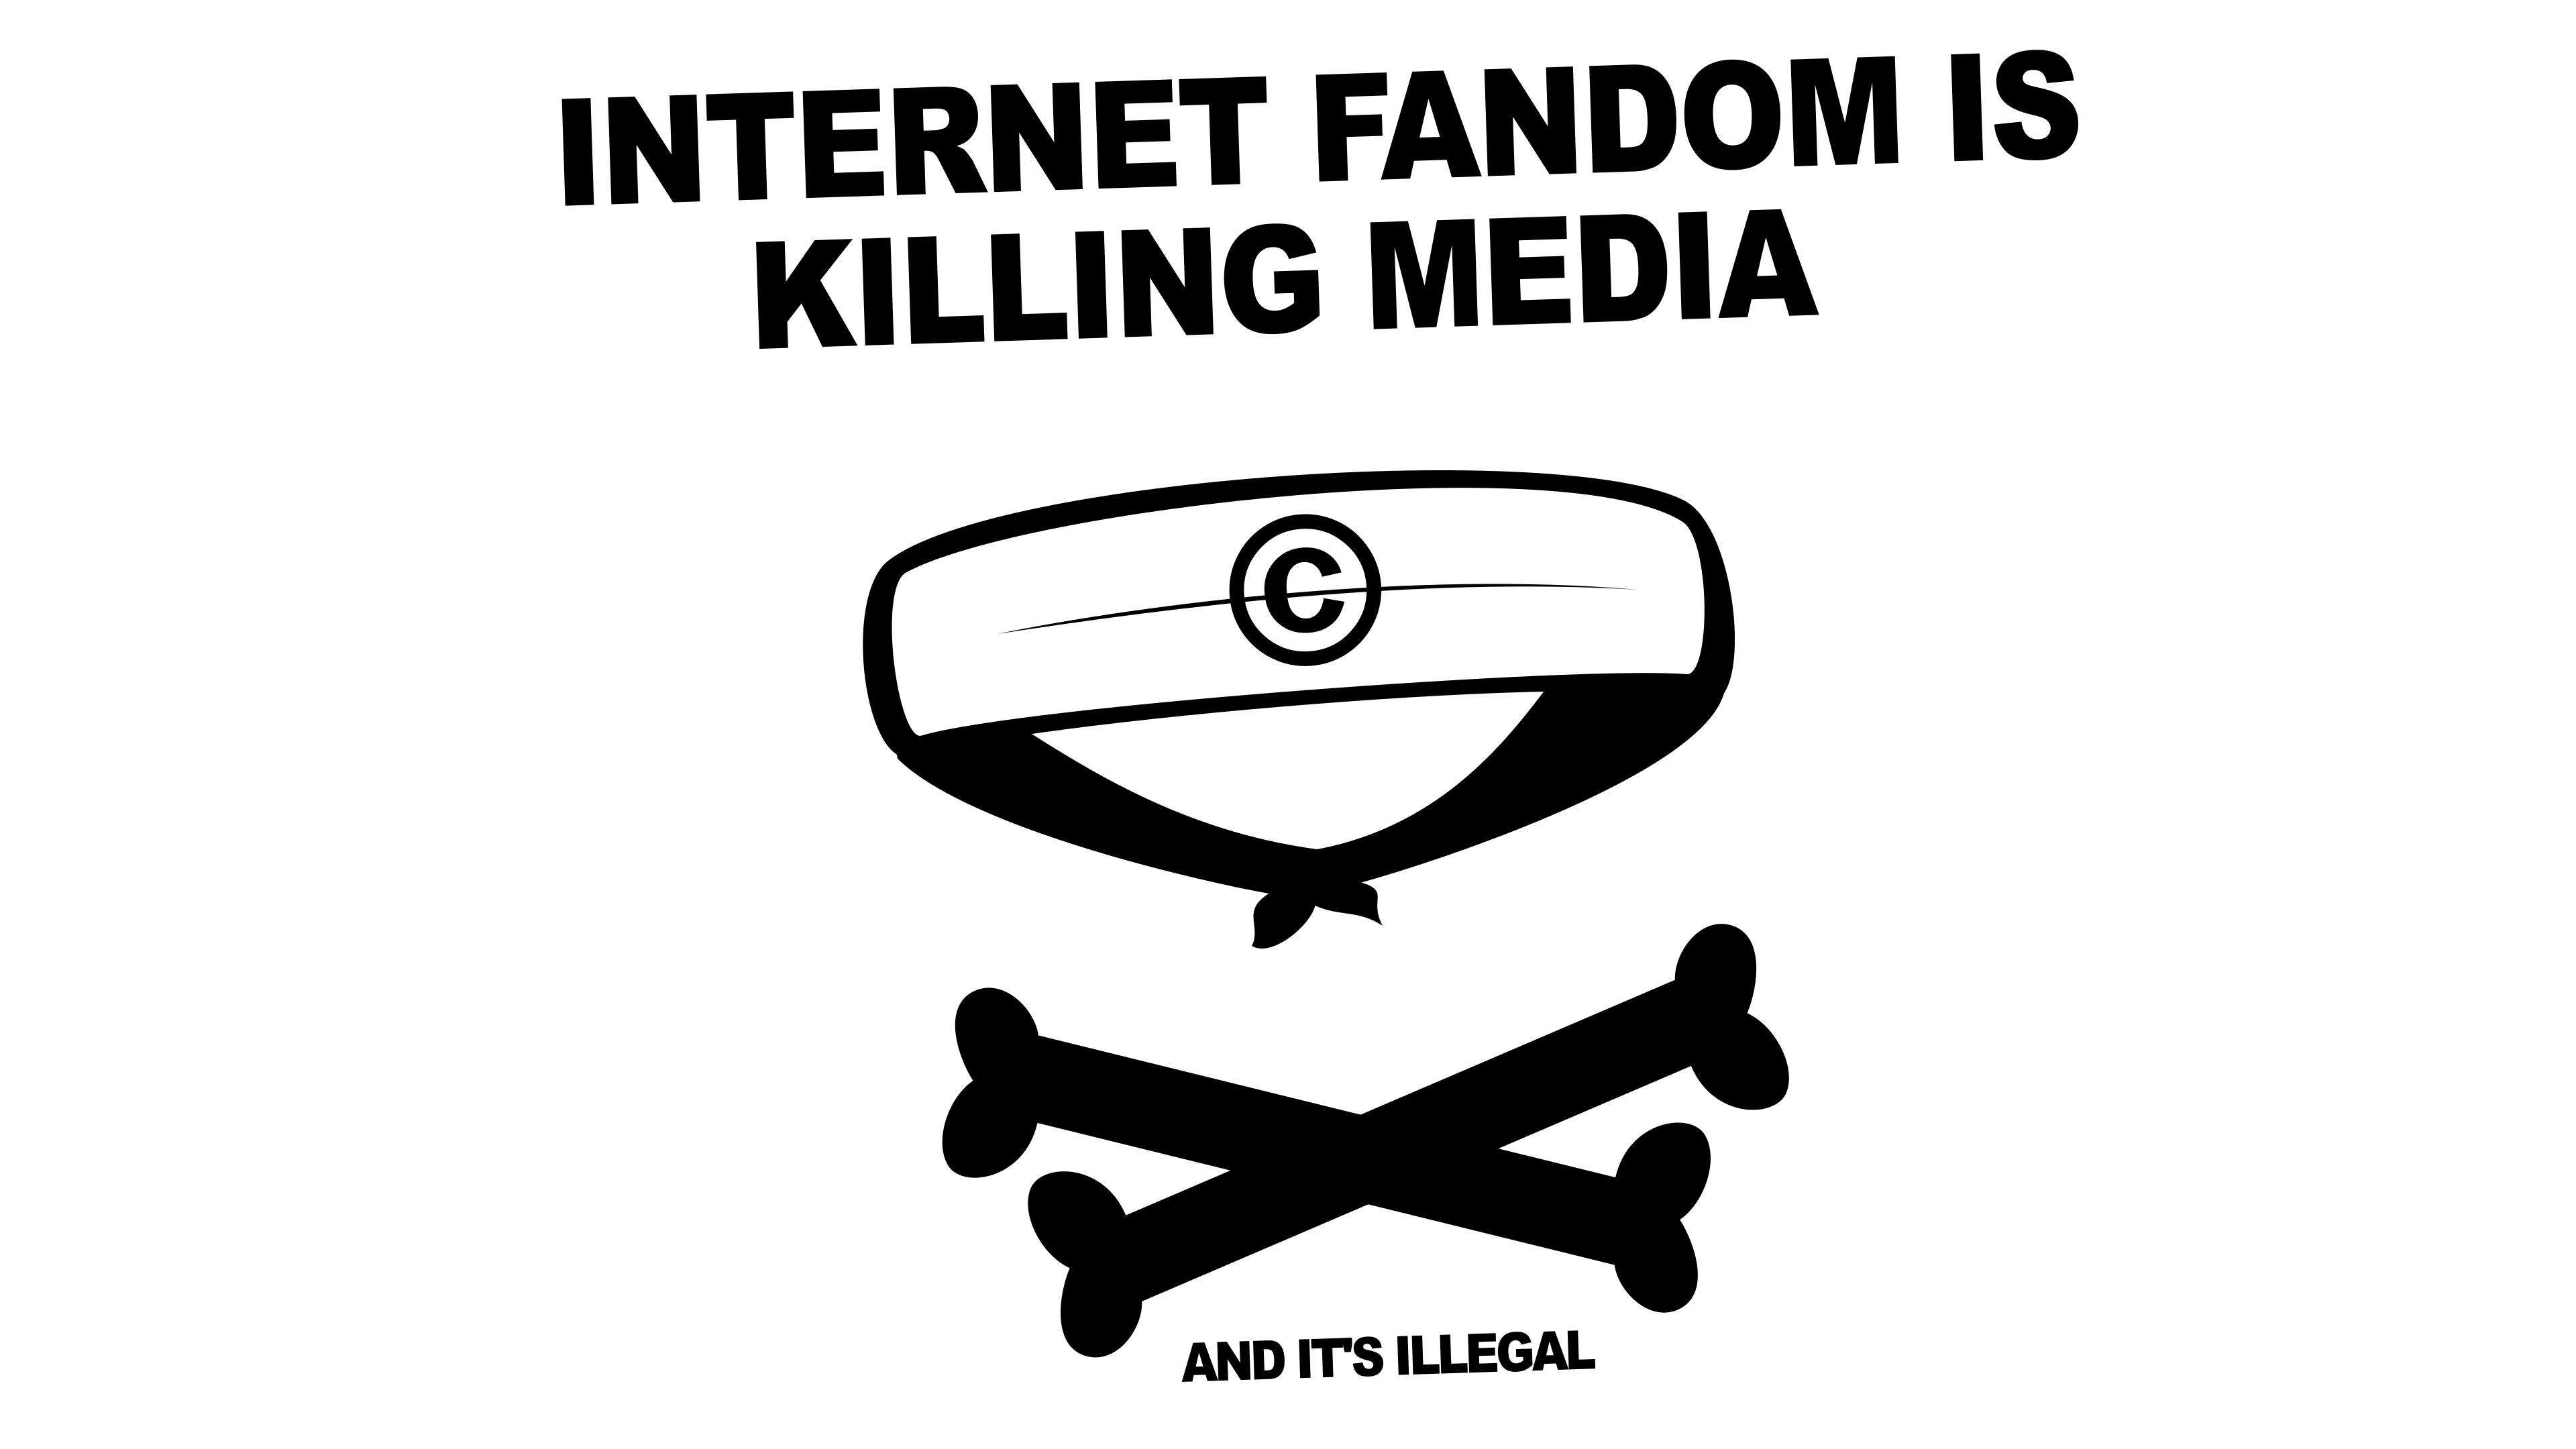 Internet Fandom is Killing Media